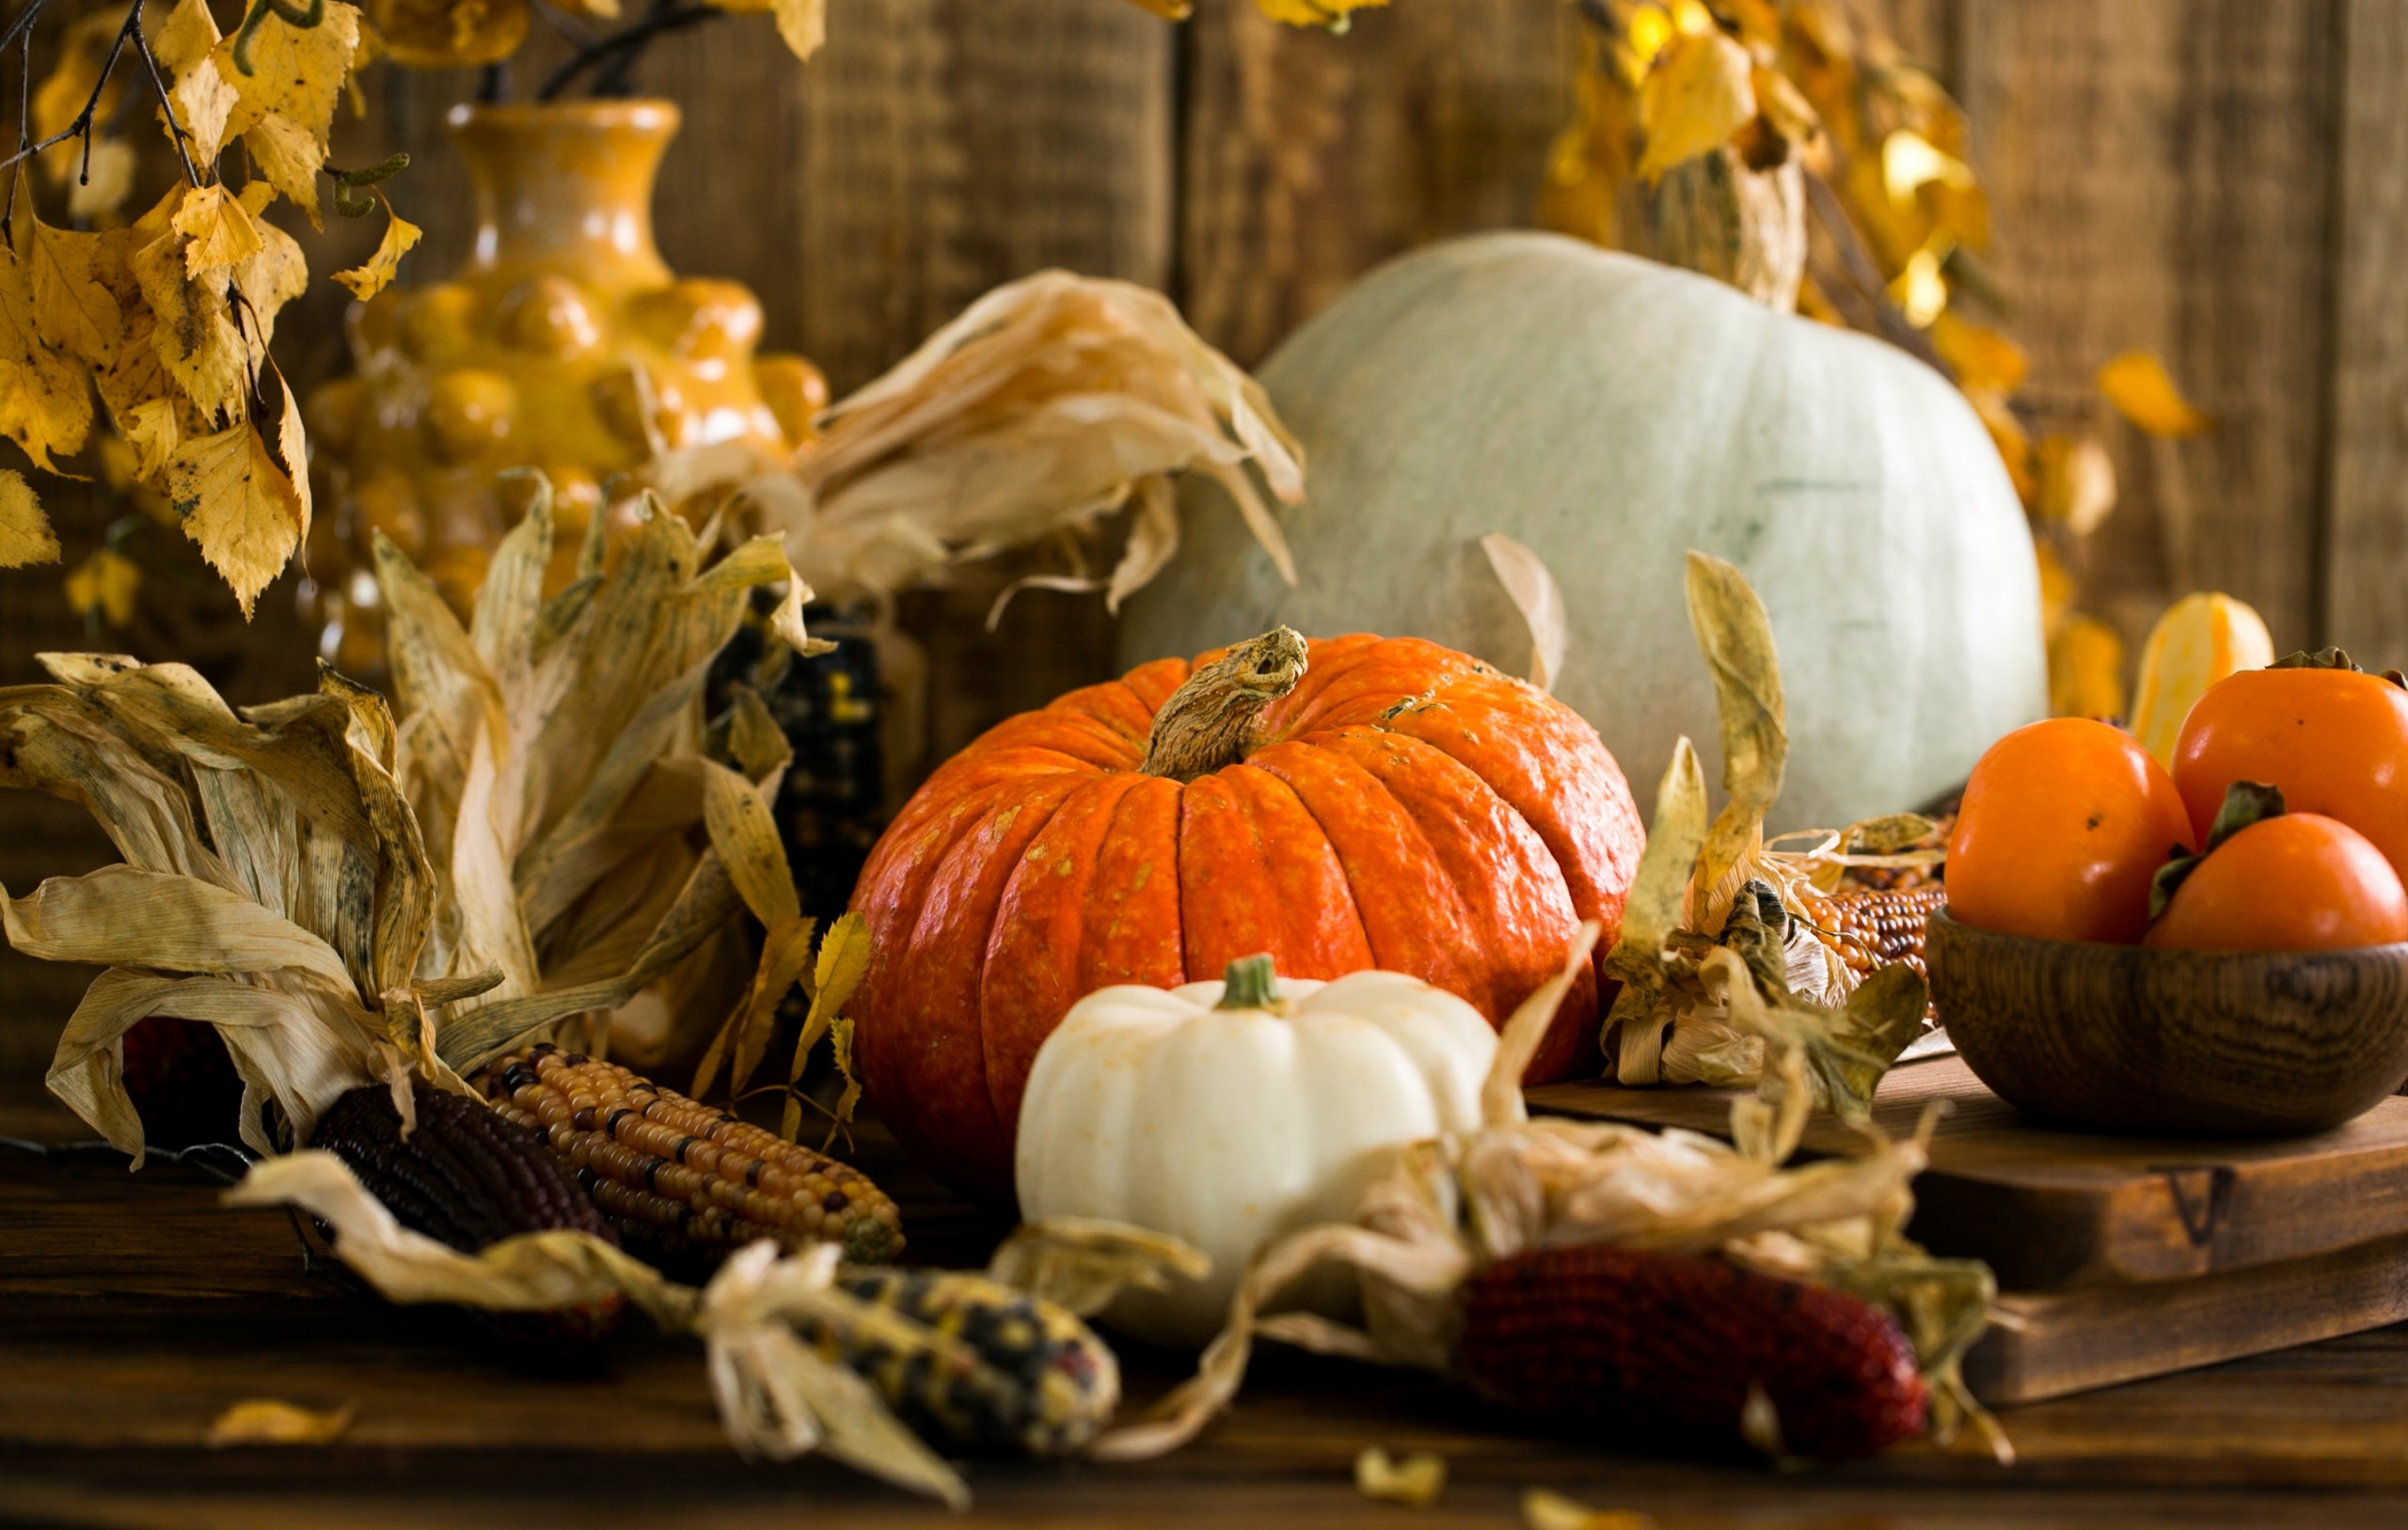 Orange and White Pumpkins with fall corn and yellow vases.